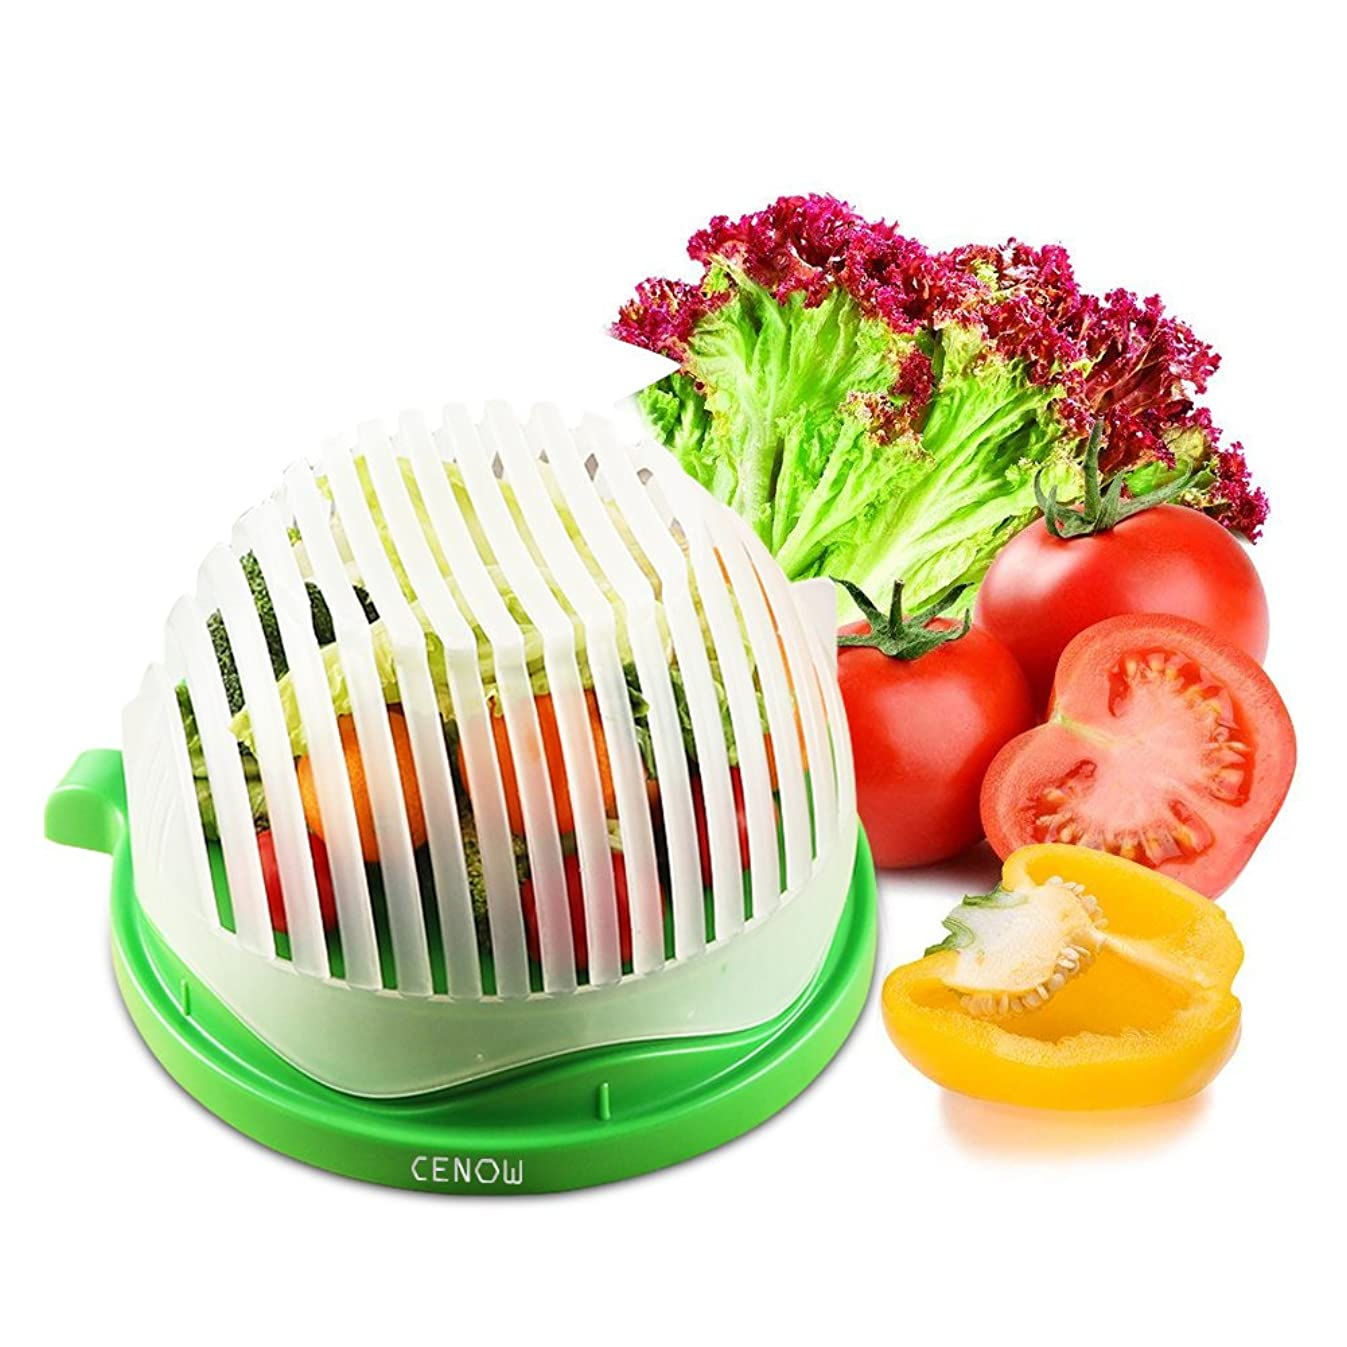 Salad Cutter Bowl Salad Chopper Bowl 60 Seconds Salad Maker Food Grade ABS Convenient for Chopping Vegetable Fruits Use As A Strainer Cutting Board Salad Chopper Sink